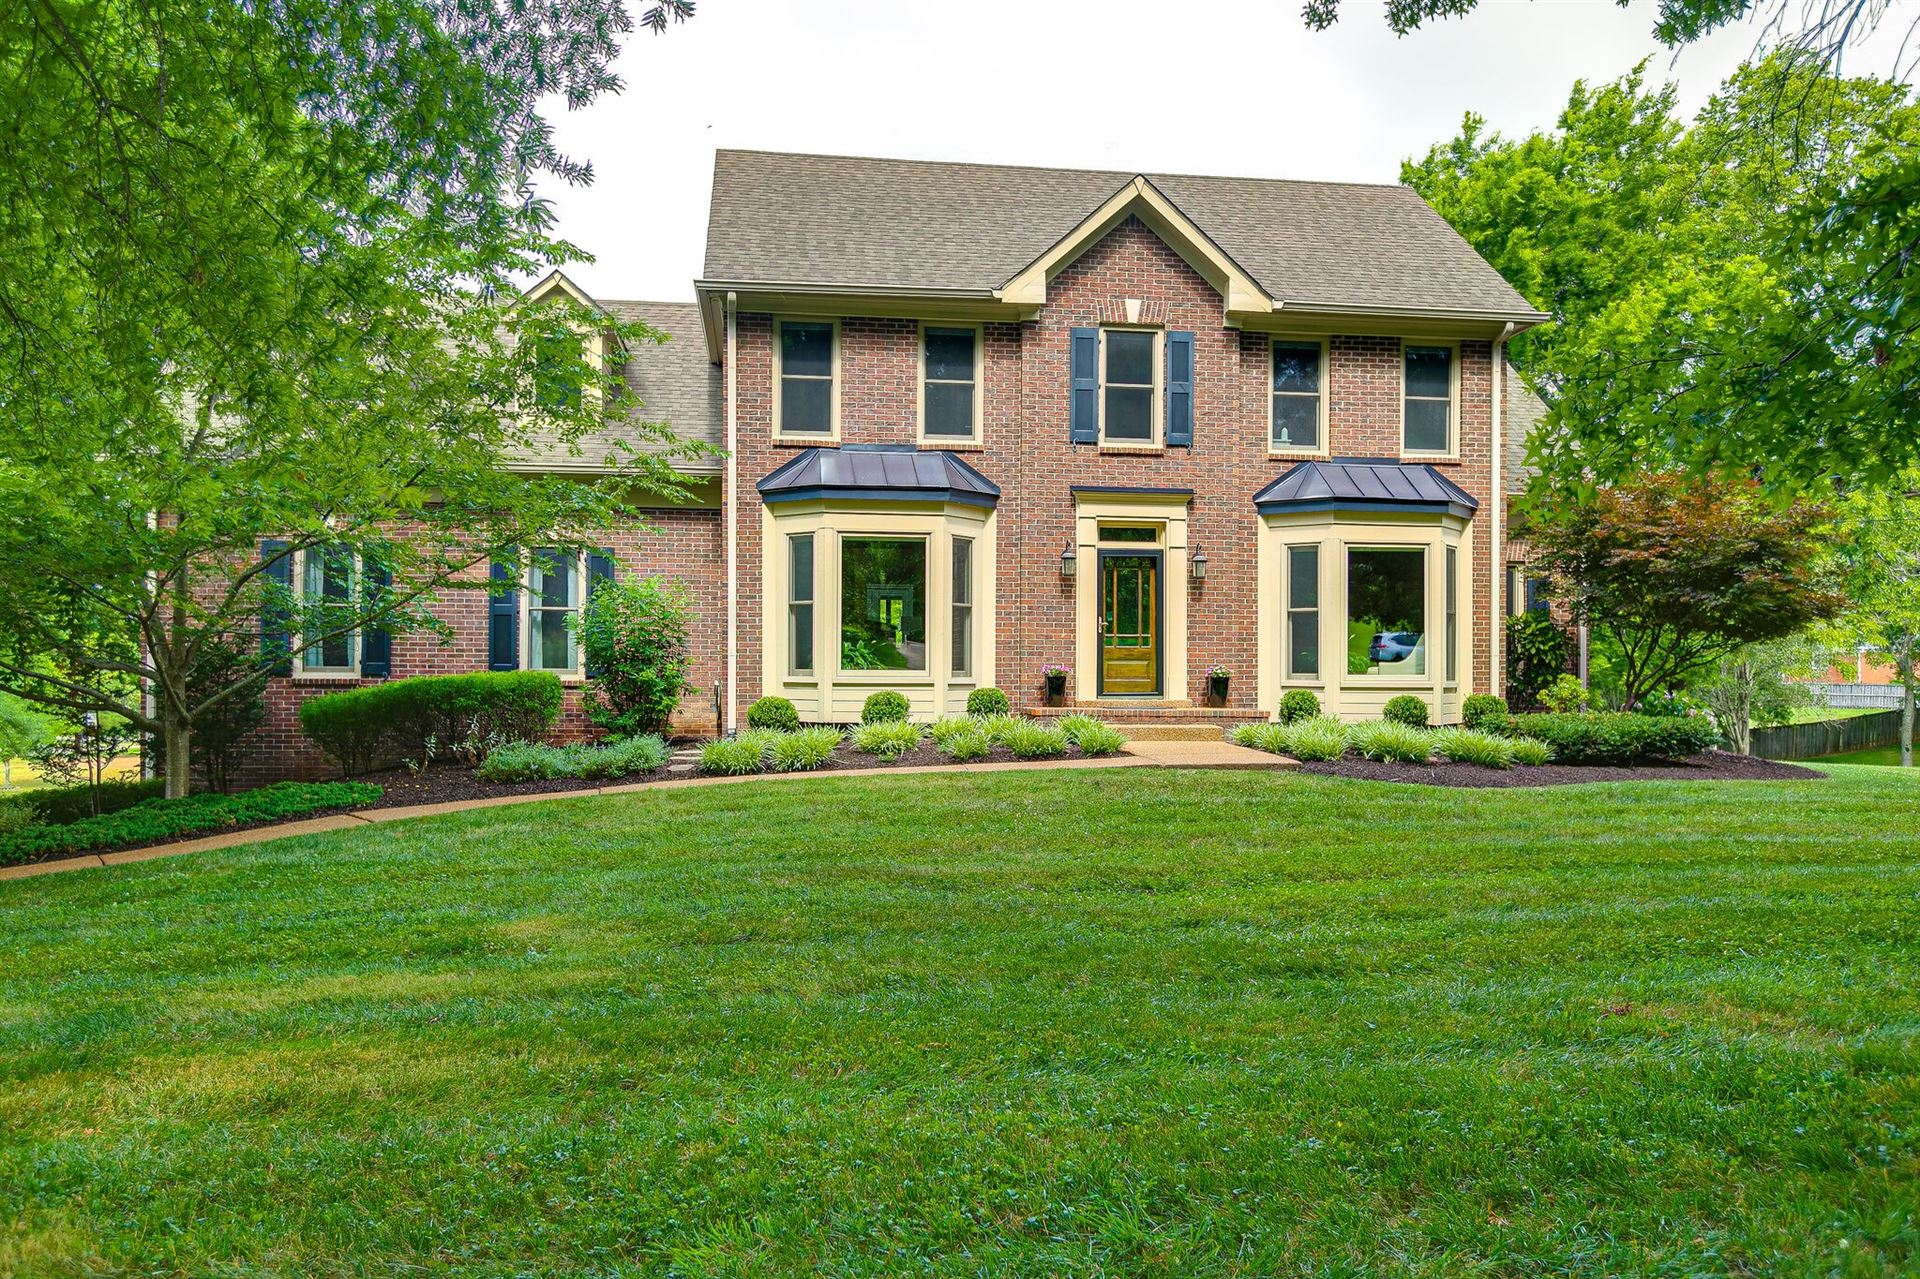 805 Steeplechase Dr, Brentwood, TN 37027 - MLS#: 2278023